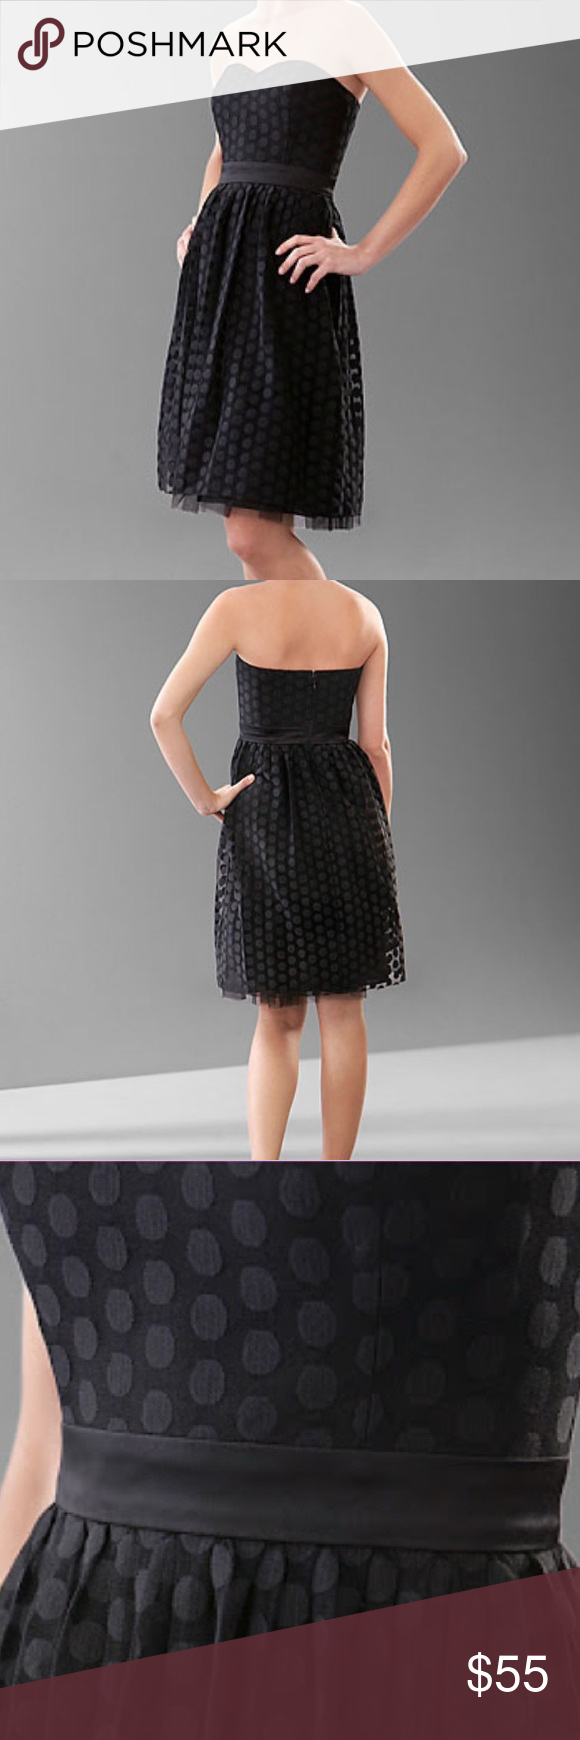 """White House Black Market Strapless Dot Lace Dress Size : 0. Excellent condition, no signs of wear. Length approx 31"""". Great prom, graduation or any occasion dress. Note: Shoes pictured are for sale in my closet as well. White House Black Market Dresses Strapless"""